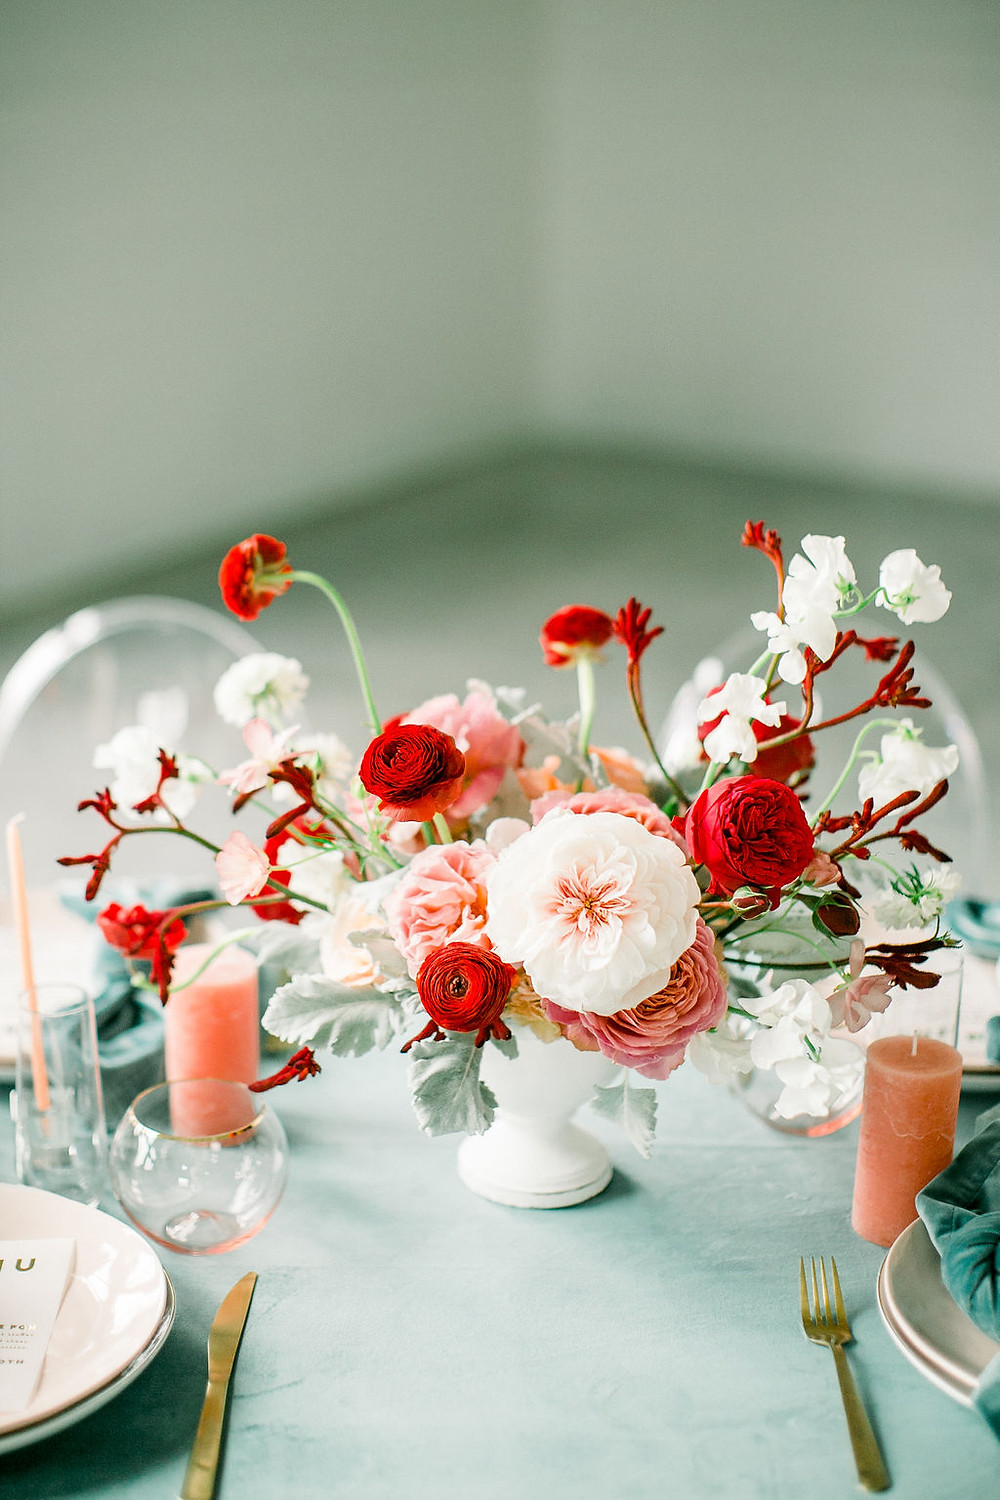 Modern centerpiece by Studio Bloom Iowa wedding florist in red, blush, and teal with garden roses, ranunculus, and sweet pea